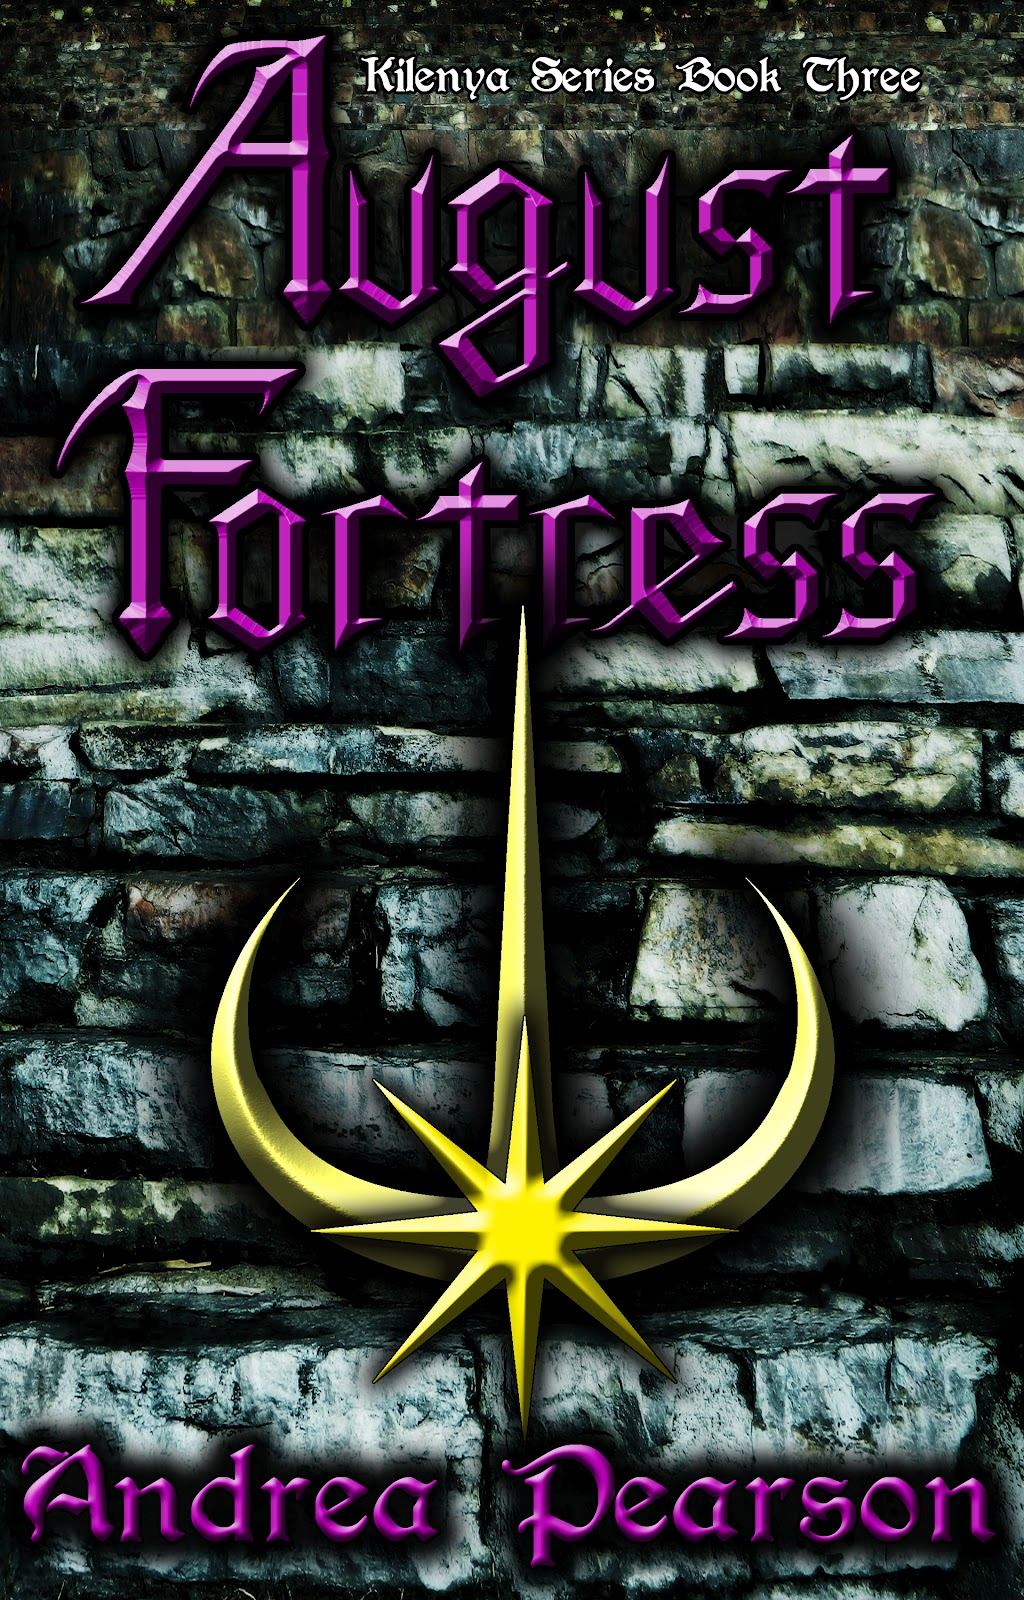 Andrea pearson books 2012 august fortress kilenya series book three on smashwords for 399 fandeluxe Images